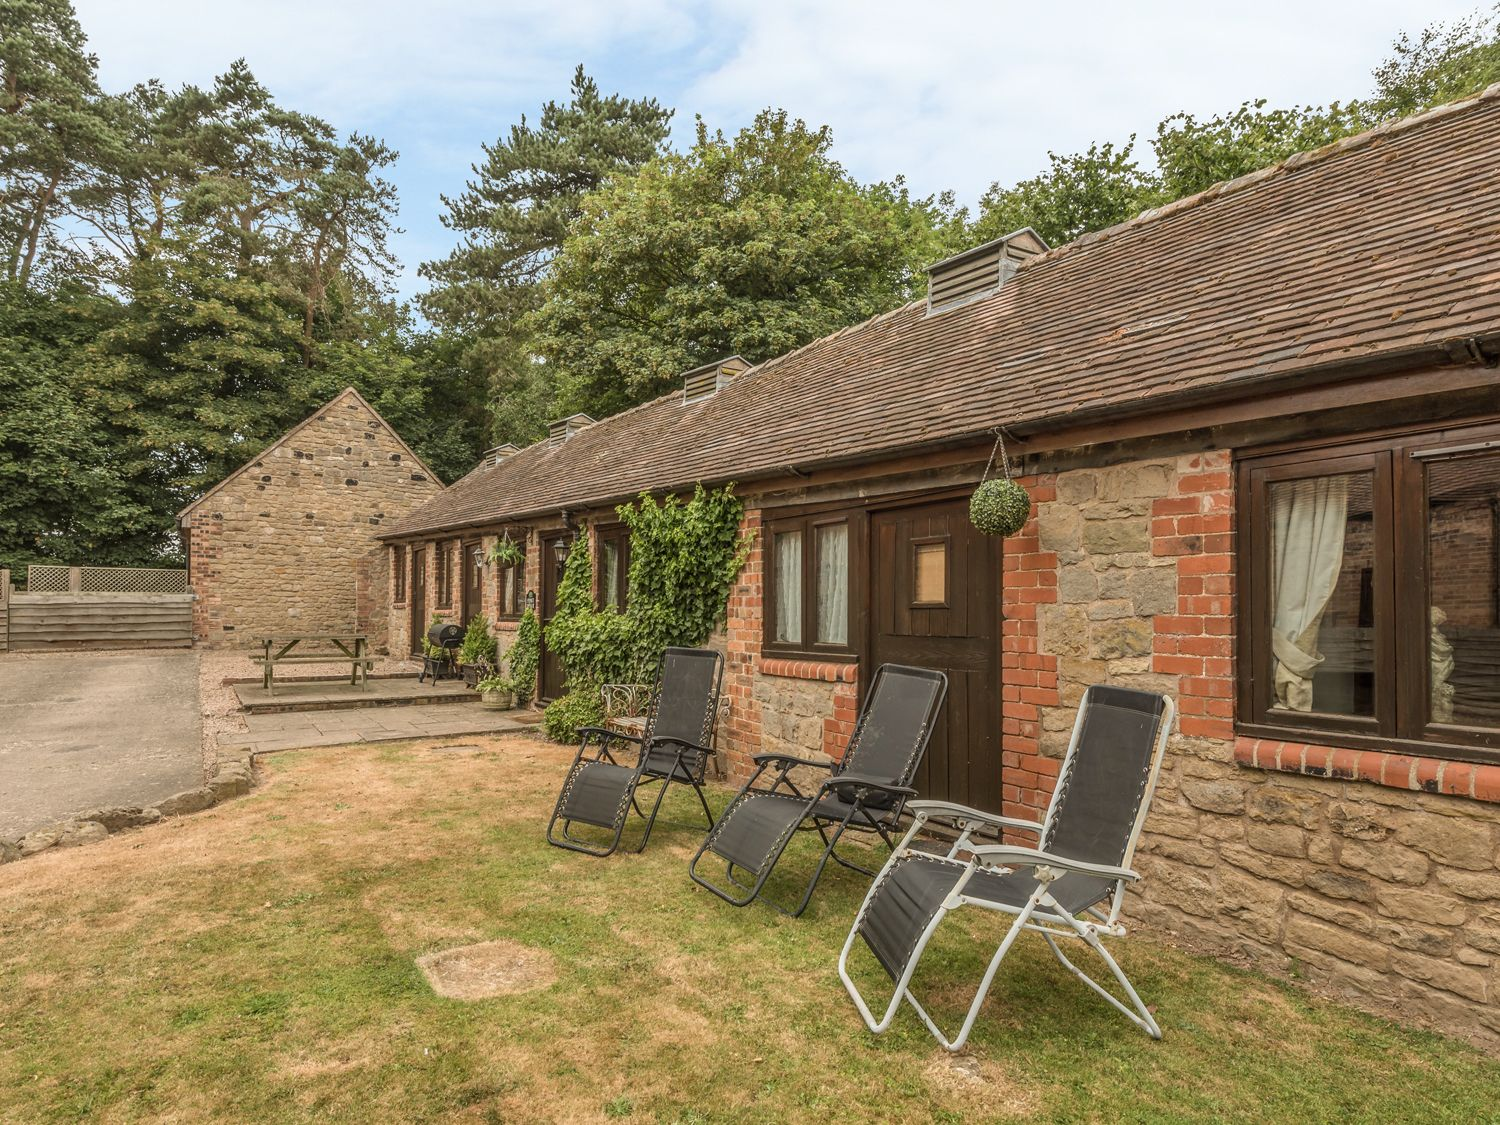 Spinney Retreat - Shropshire - 1191 - photo 1